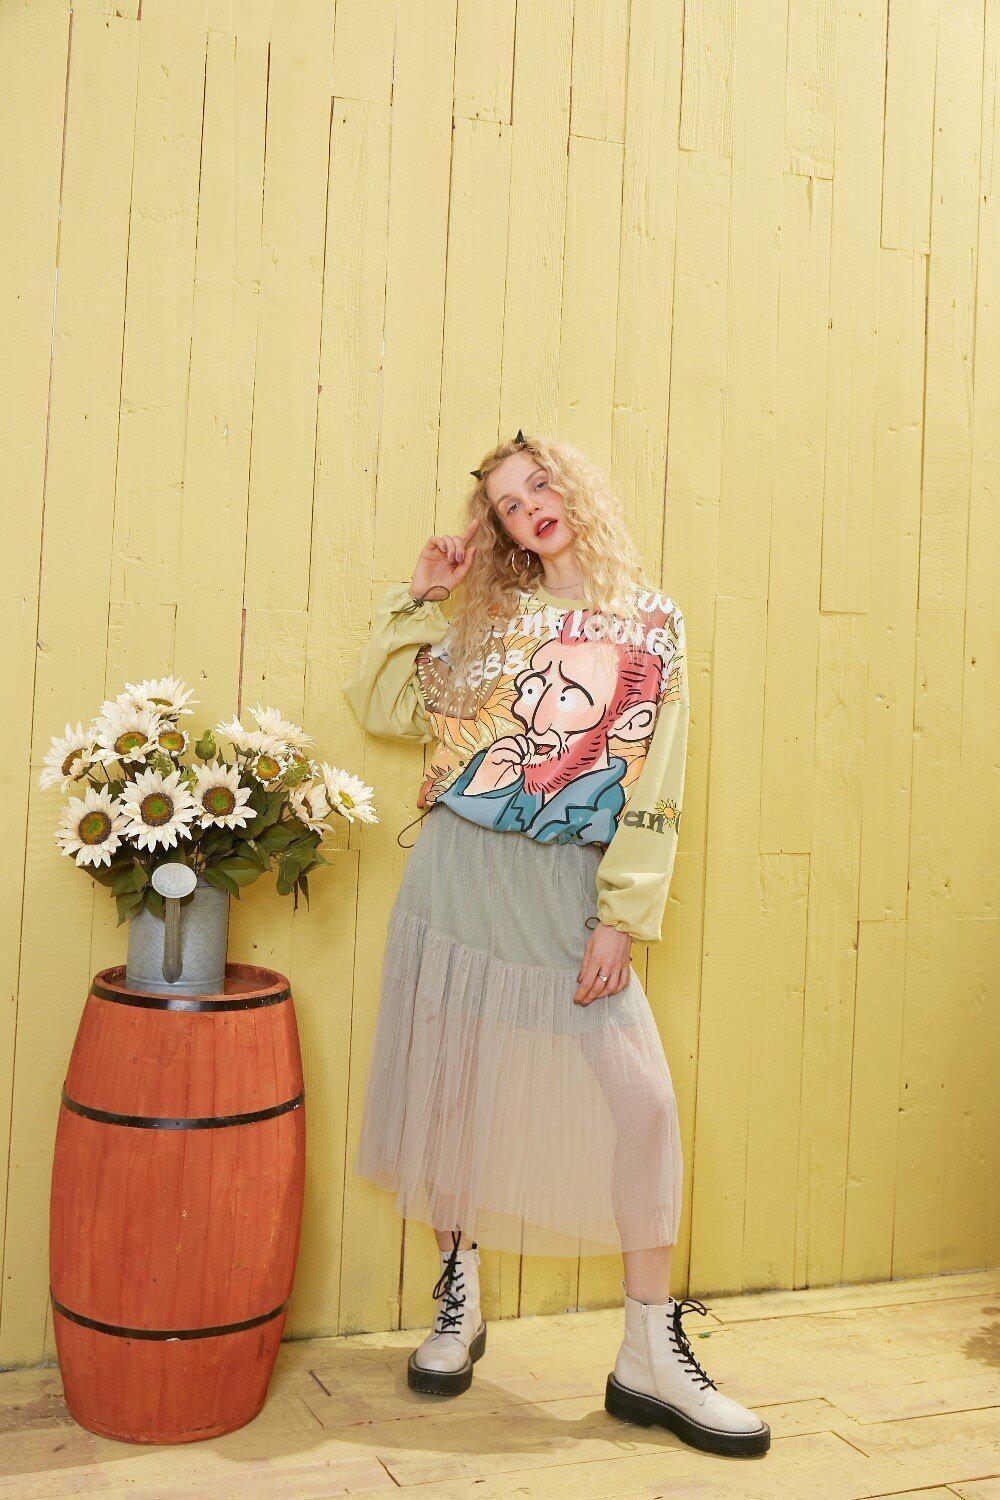 VAN GOGH GRAPHIC SWEATSHIRT - Cosmique Studio